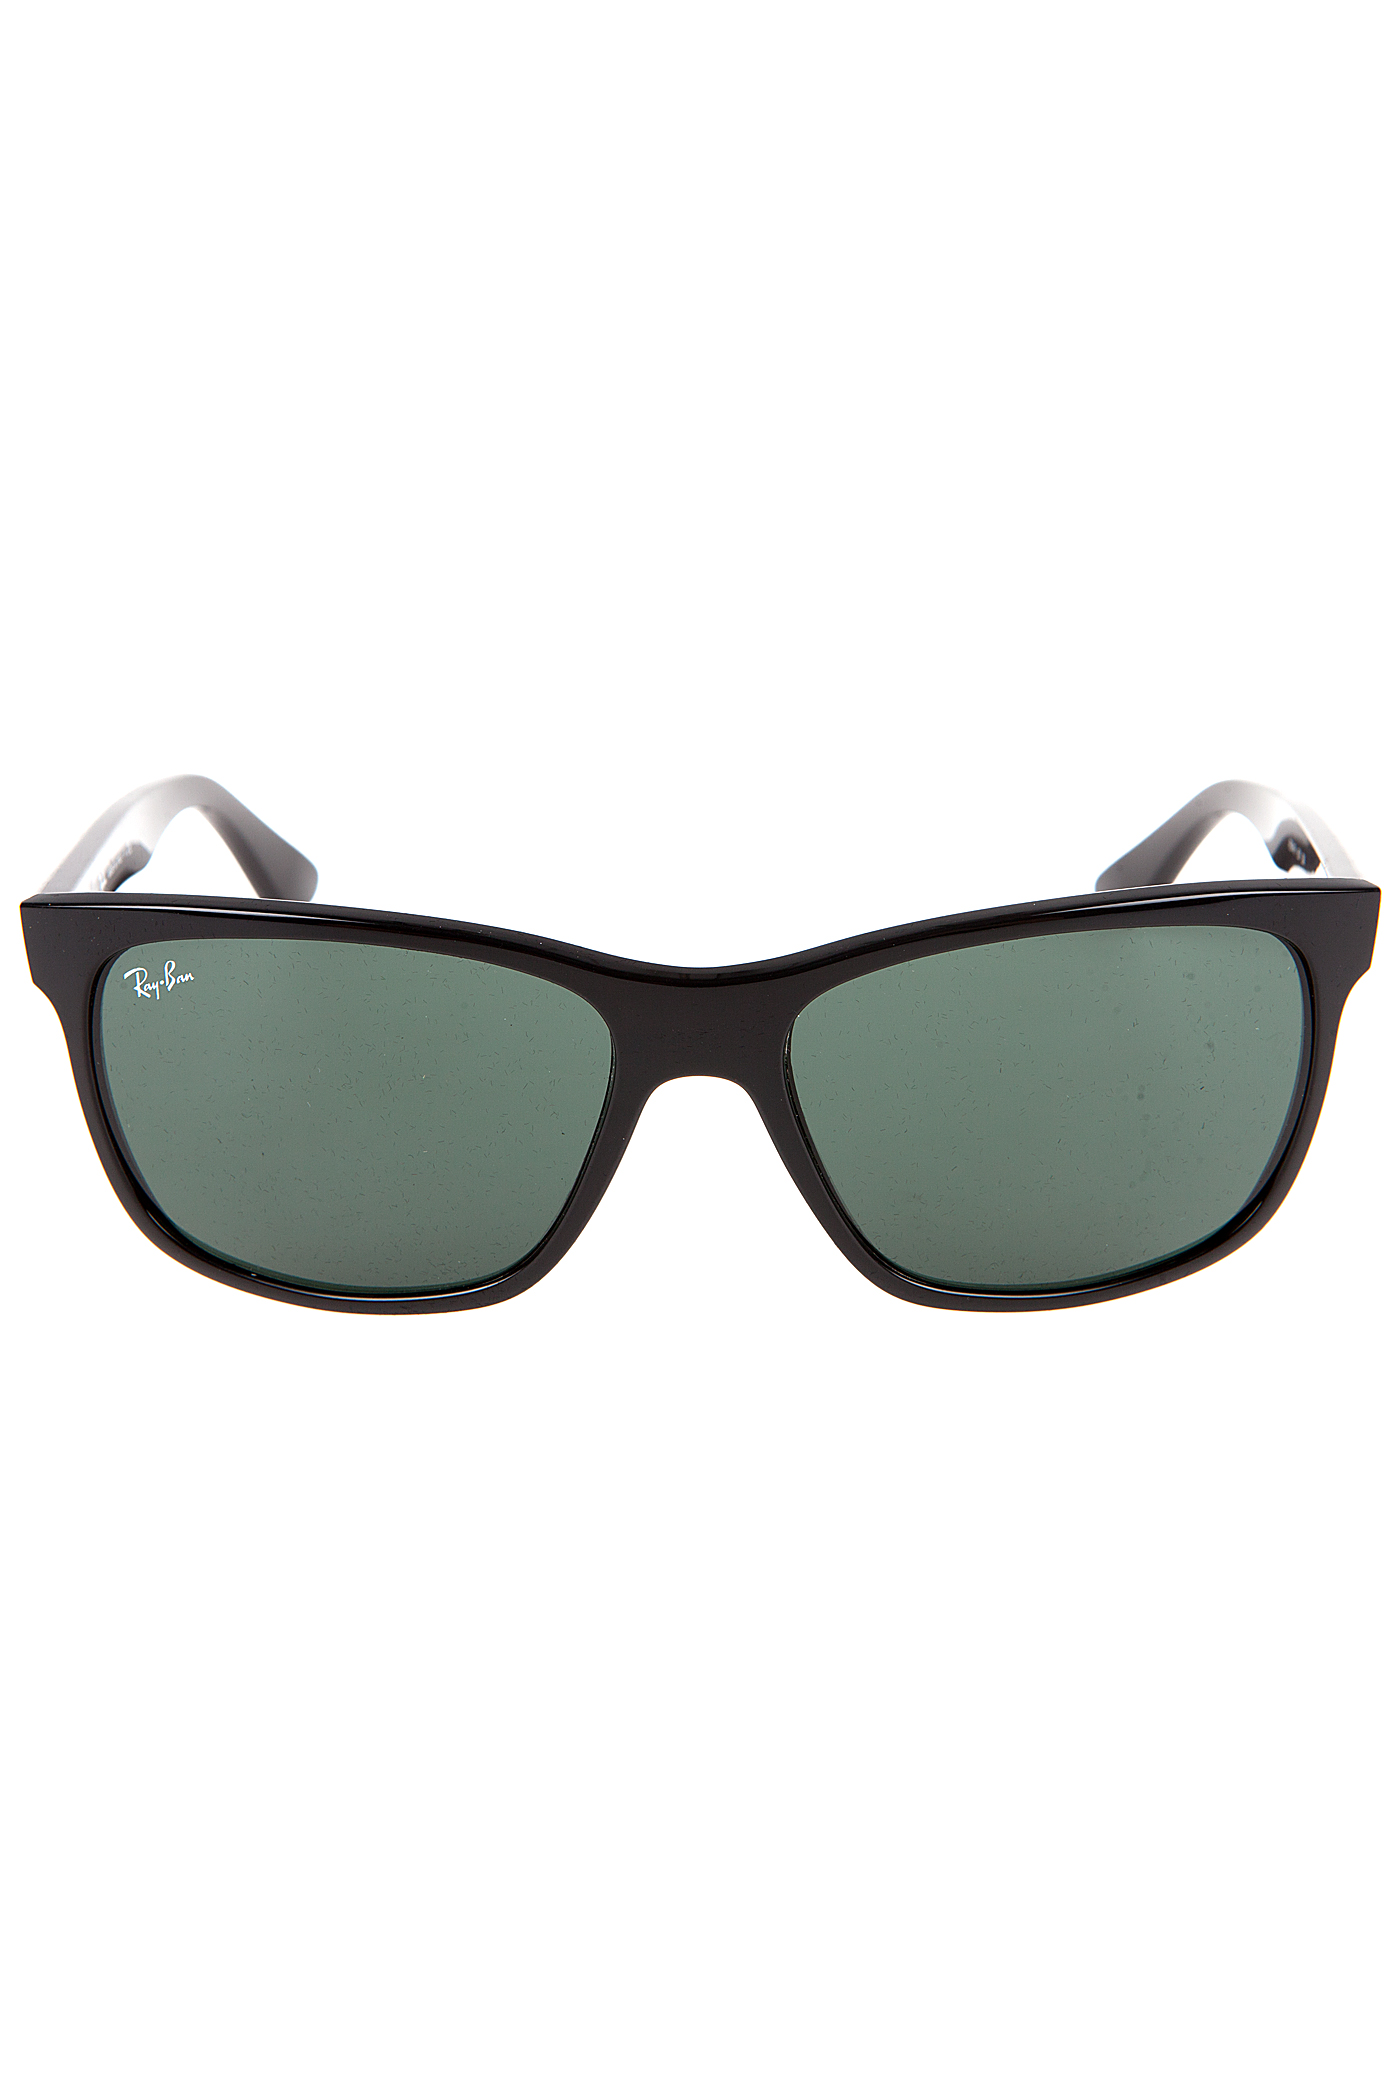 ray ban rb4181 sonnenbrille 57mm black kaufen bei skatedeluxe. Black Bedroom Furniture Sets. Home Design Ideas